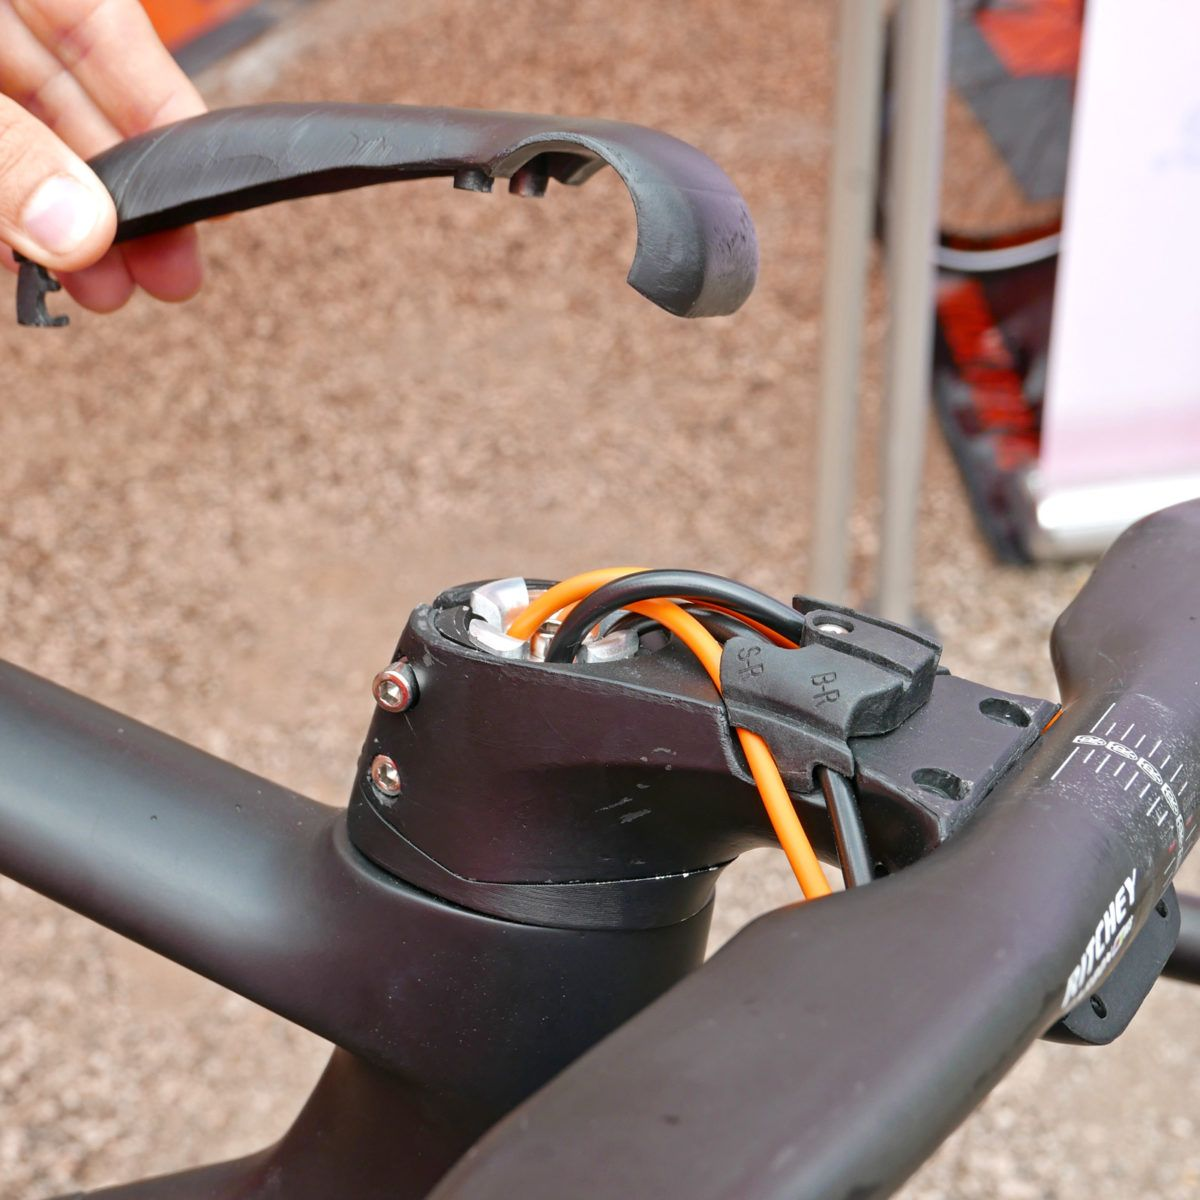 Ktm Revelator Lisse Fully Integrated Cockpit Carbon Disc